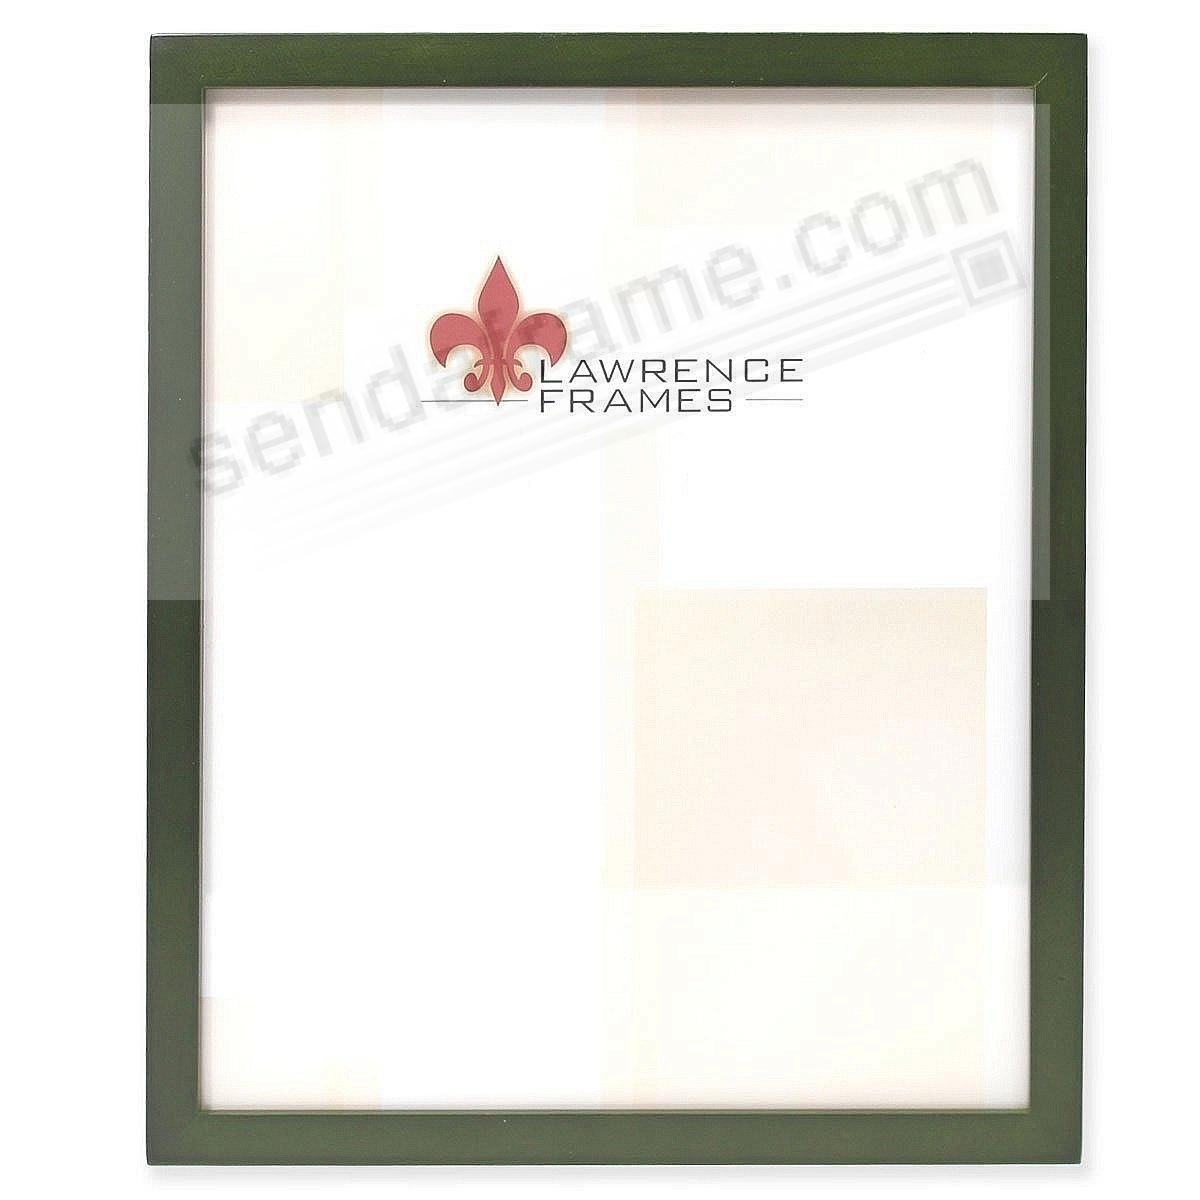 SQUARE CORNER Green Stain classic 5x7 frame by Lawrence Frames®